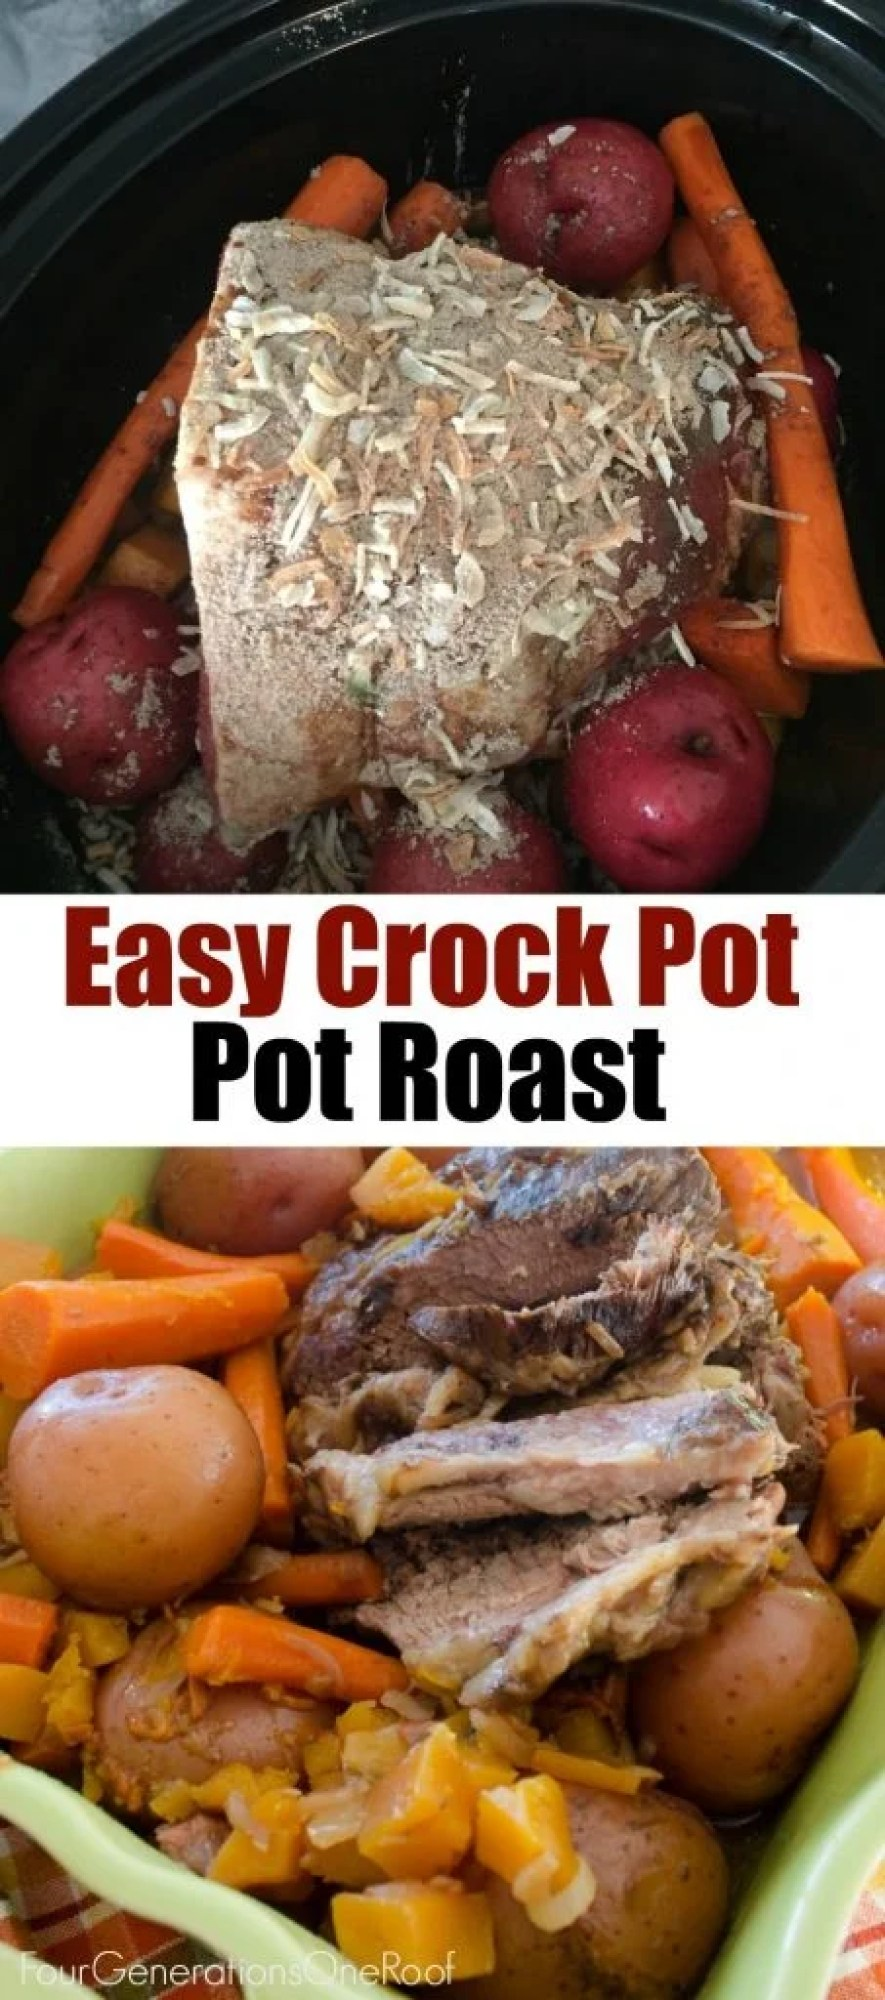 crock-pot-pot-roast / Easy steps, 1, 2, 3 - cook on low for 6 hours.